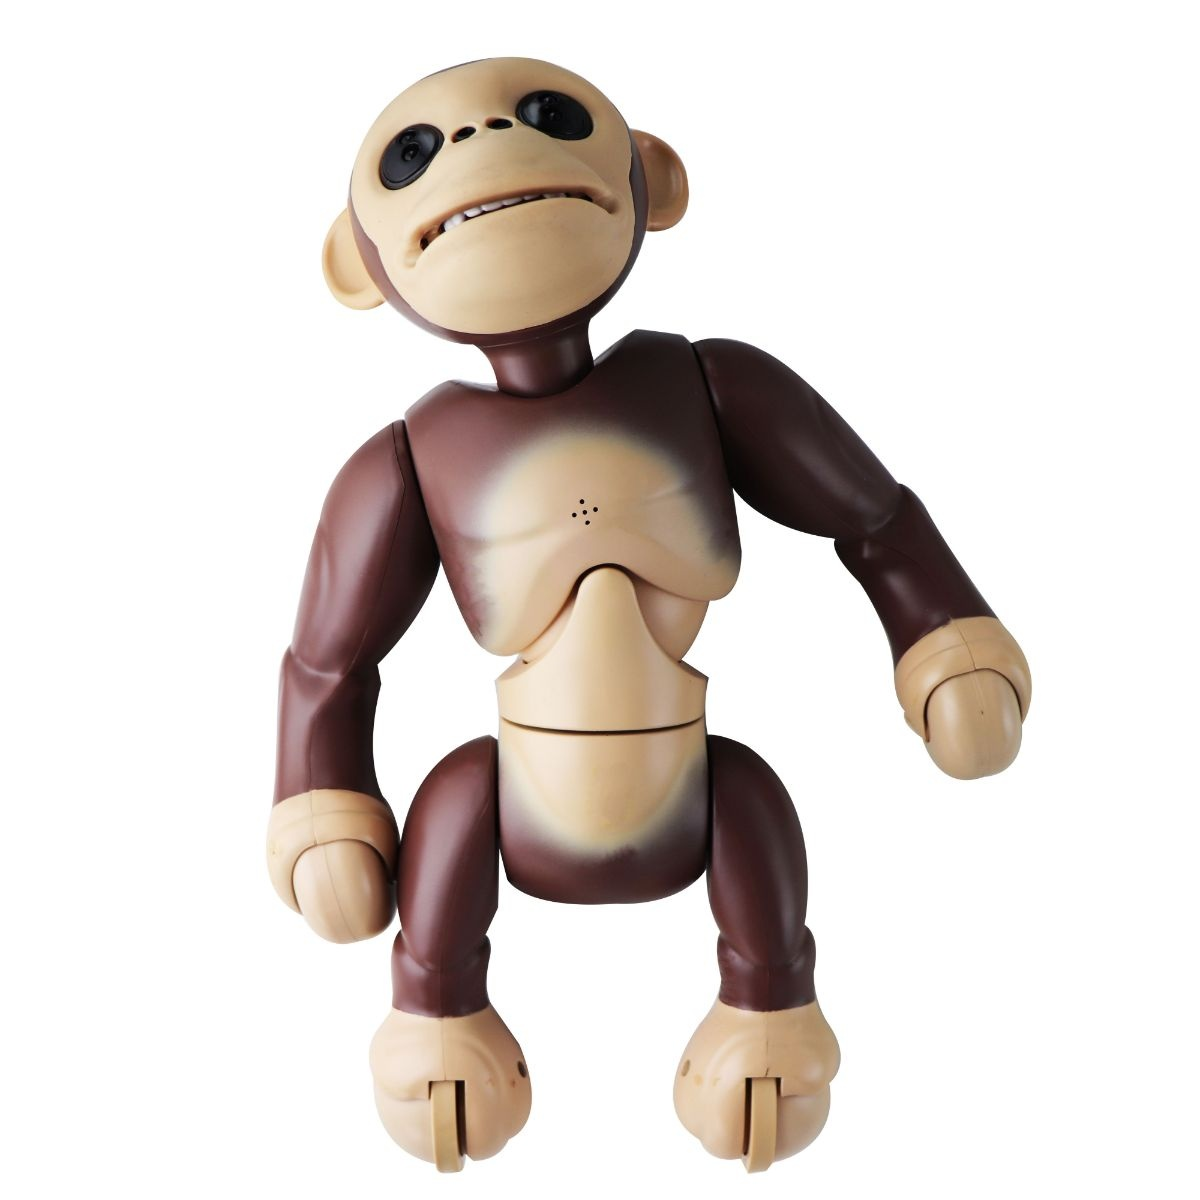 Zoomer Chimp Interactive Toy Chimp with Voice Command and Sensors